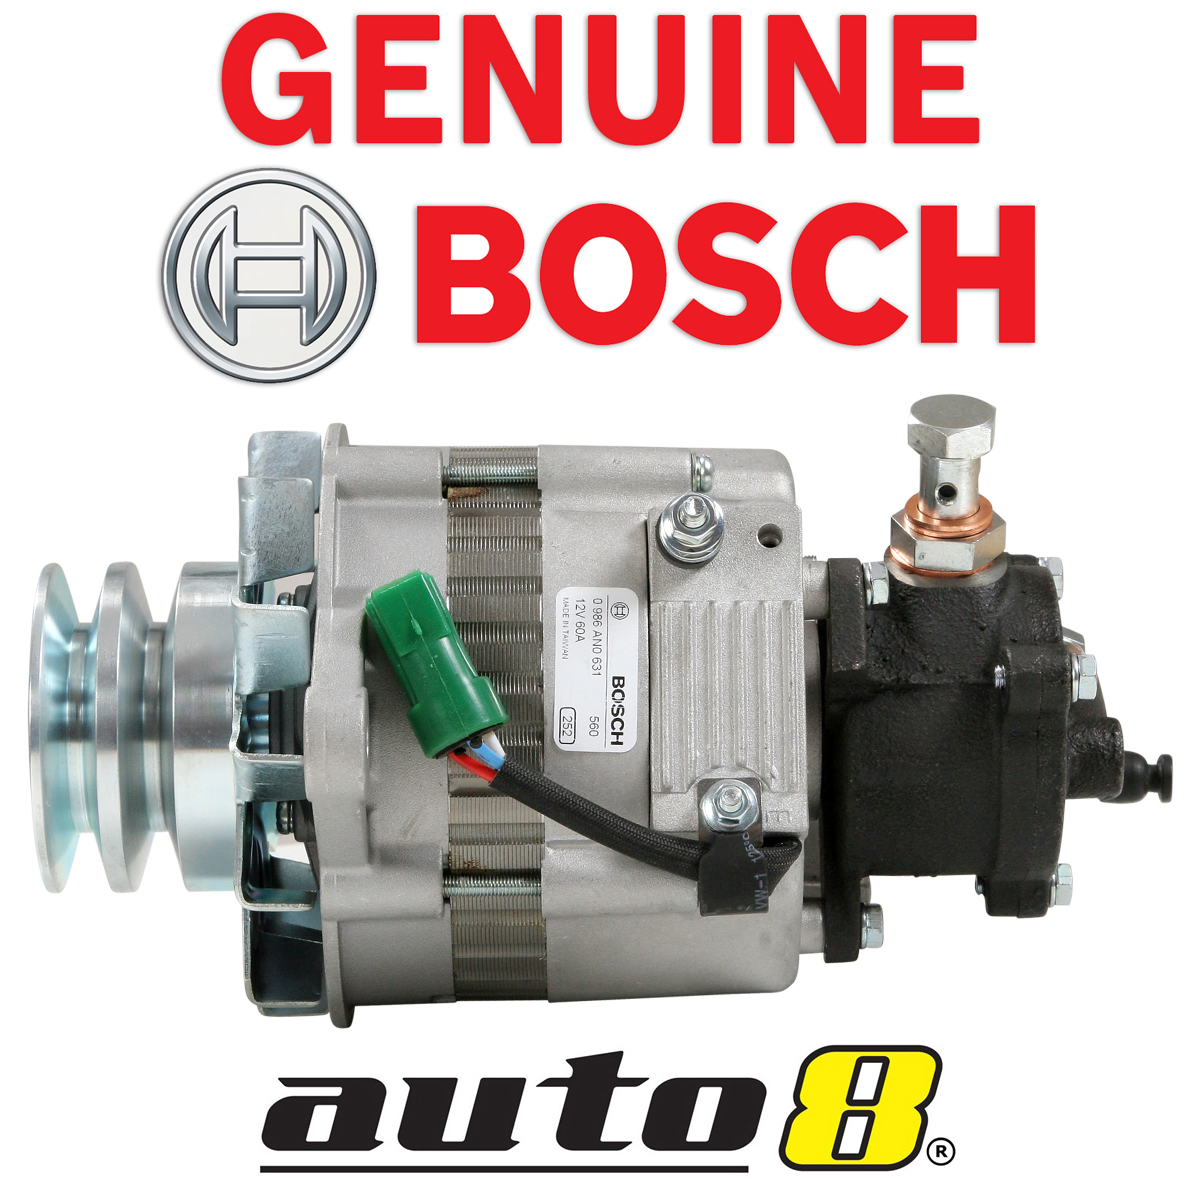 Hiace alternator wiring diagram free download wiring diagram xwiaw free download wiring diagram genuine bosch alternator fits toyota hiace lh103 lh113 lh125 2 8l asfbconference2016 Images